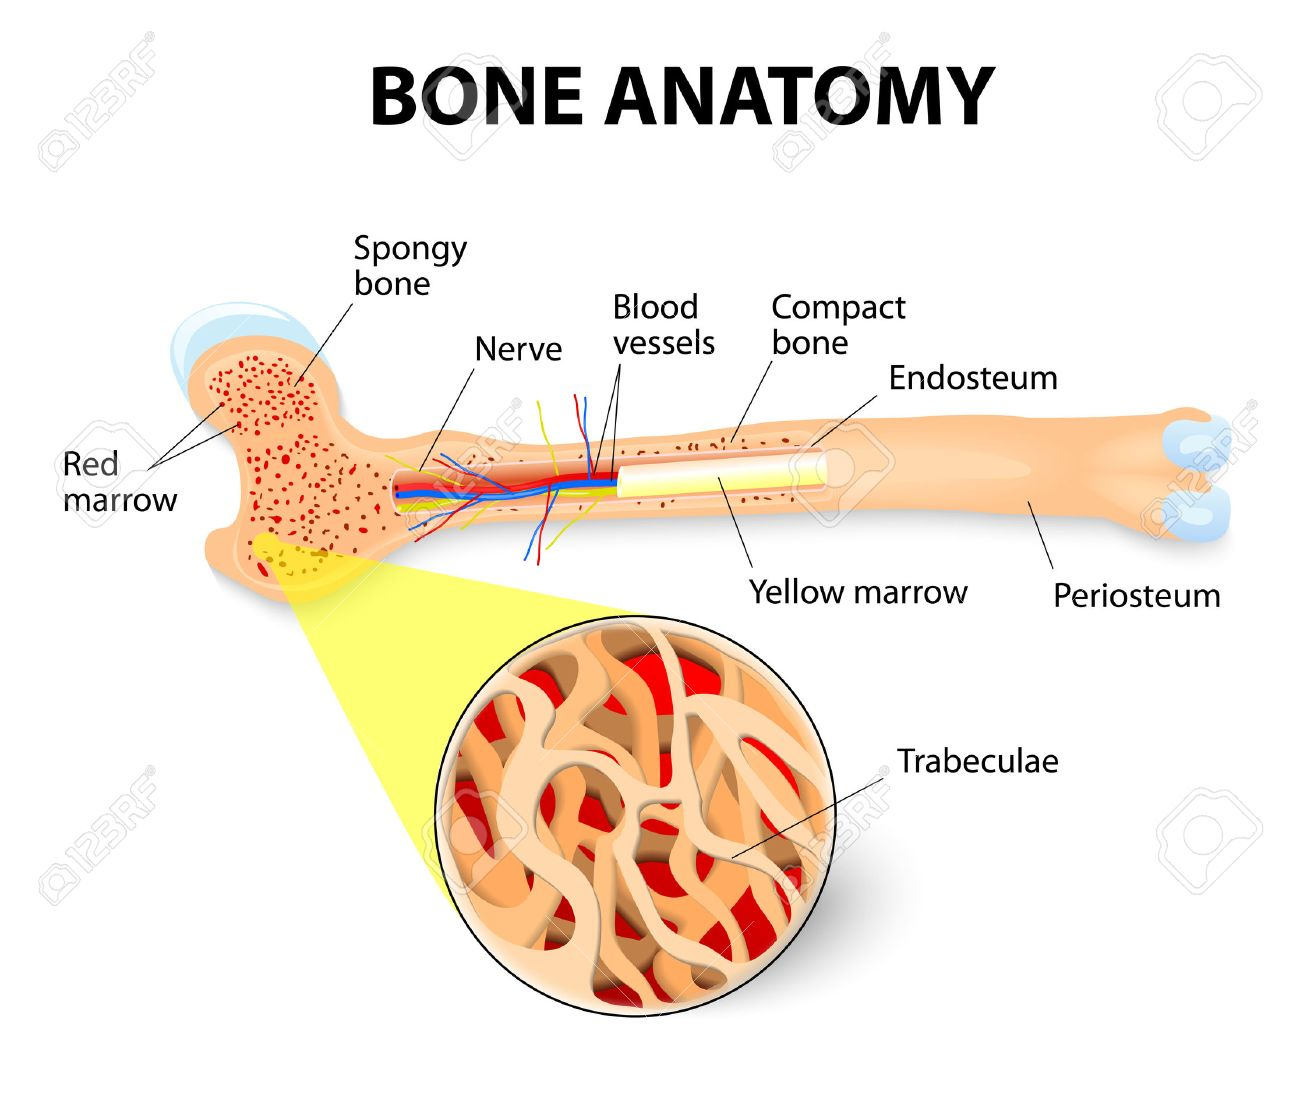 anatomy of the Long Bone. Periosteum, endosteum, bone marrow and trabeculae. - 27278068